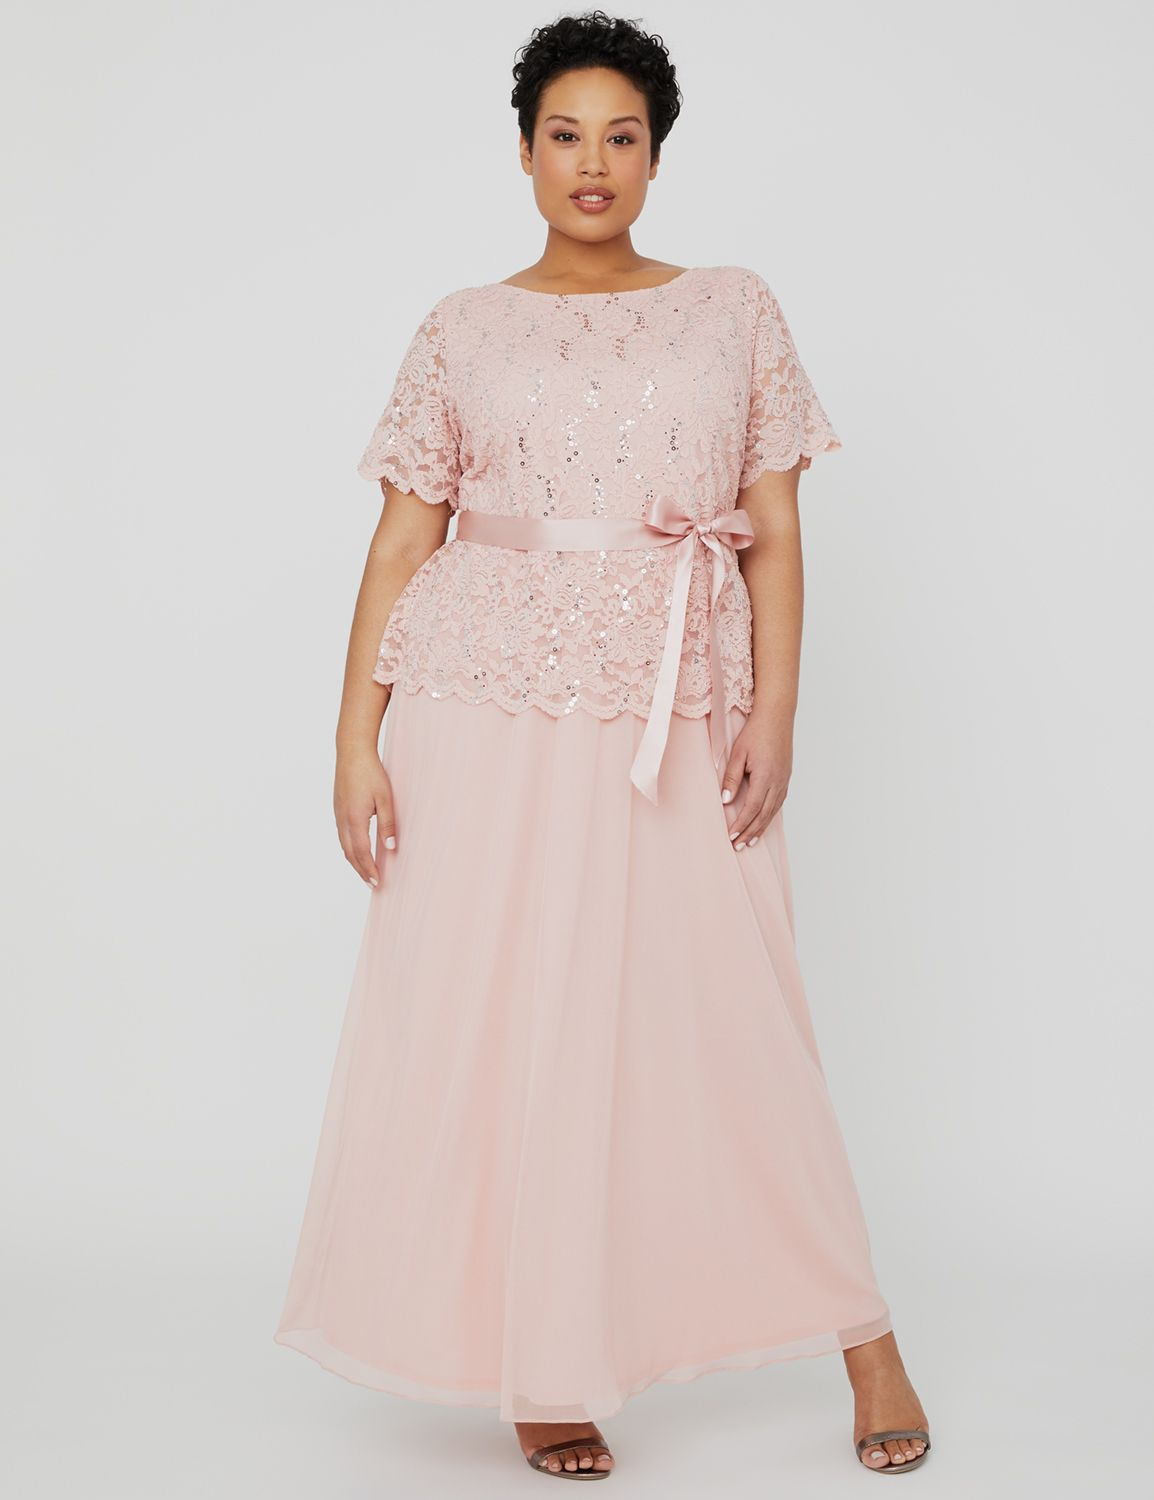 Blush Sunset Dress 1090995 Long Dress with Lace Bodice MP-300101538